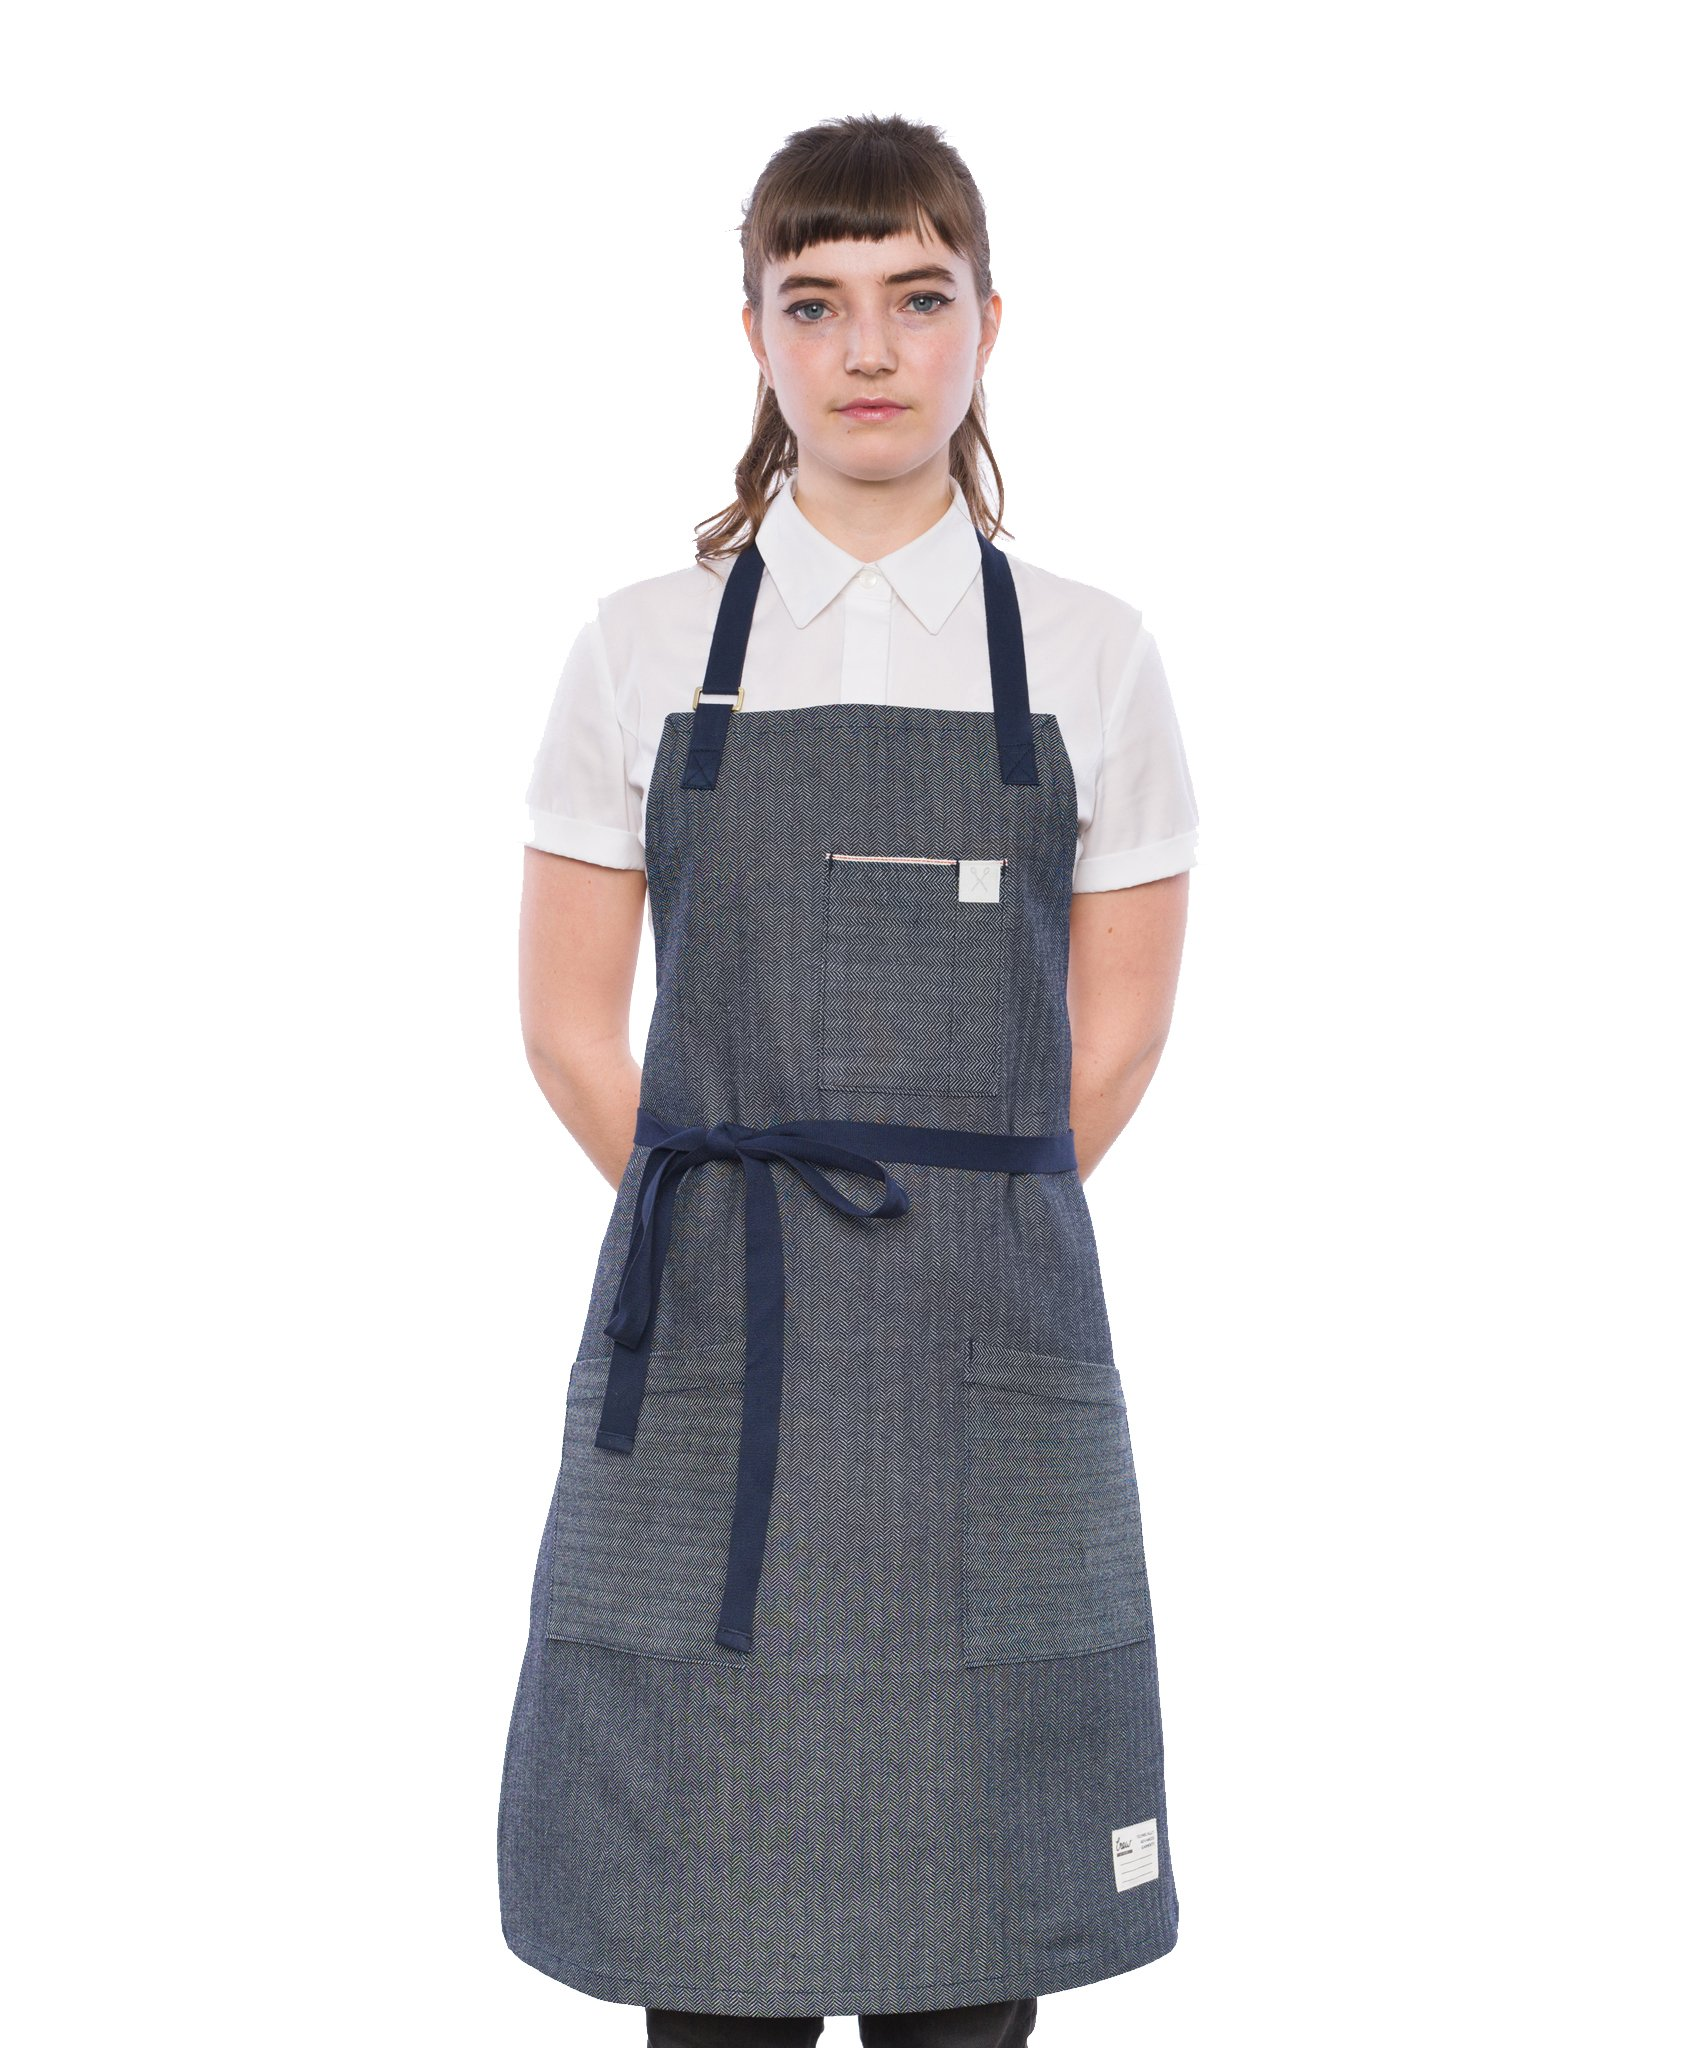 Crew Apparel The Herring Selvedge Denim Standard Apron Made in USA